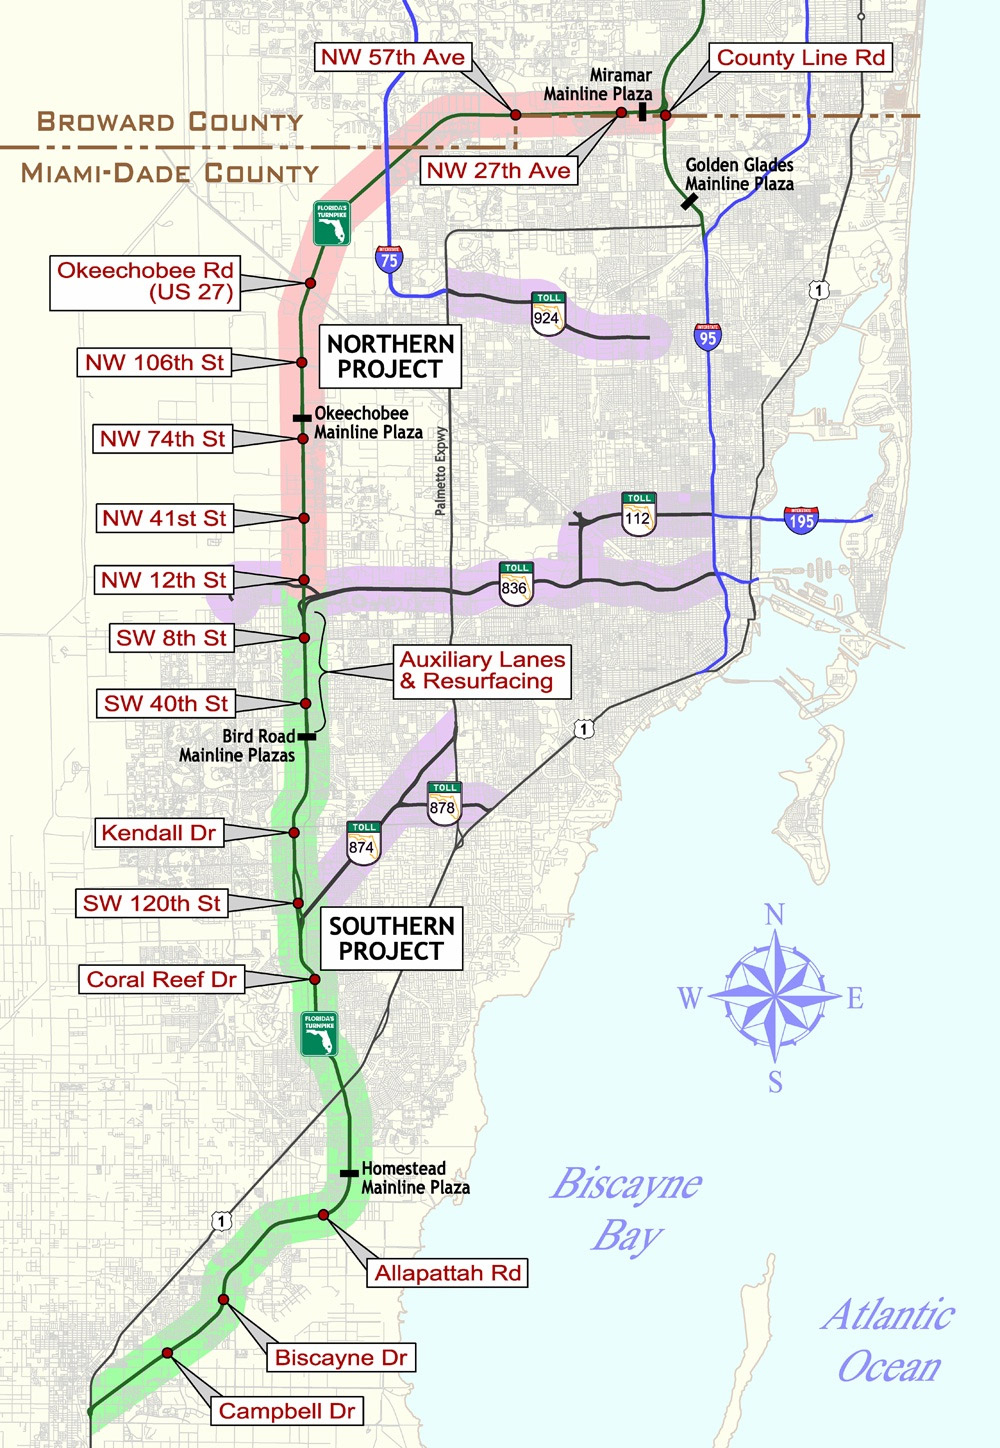 Florida Keys & Key West Travel Information - Map Of Florida Keys Hotels